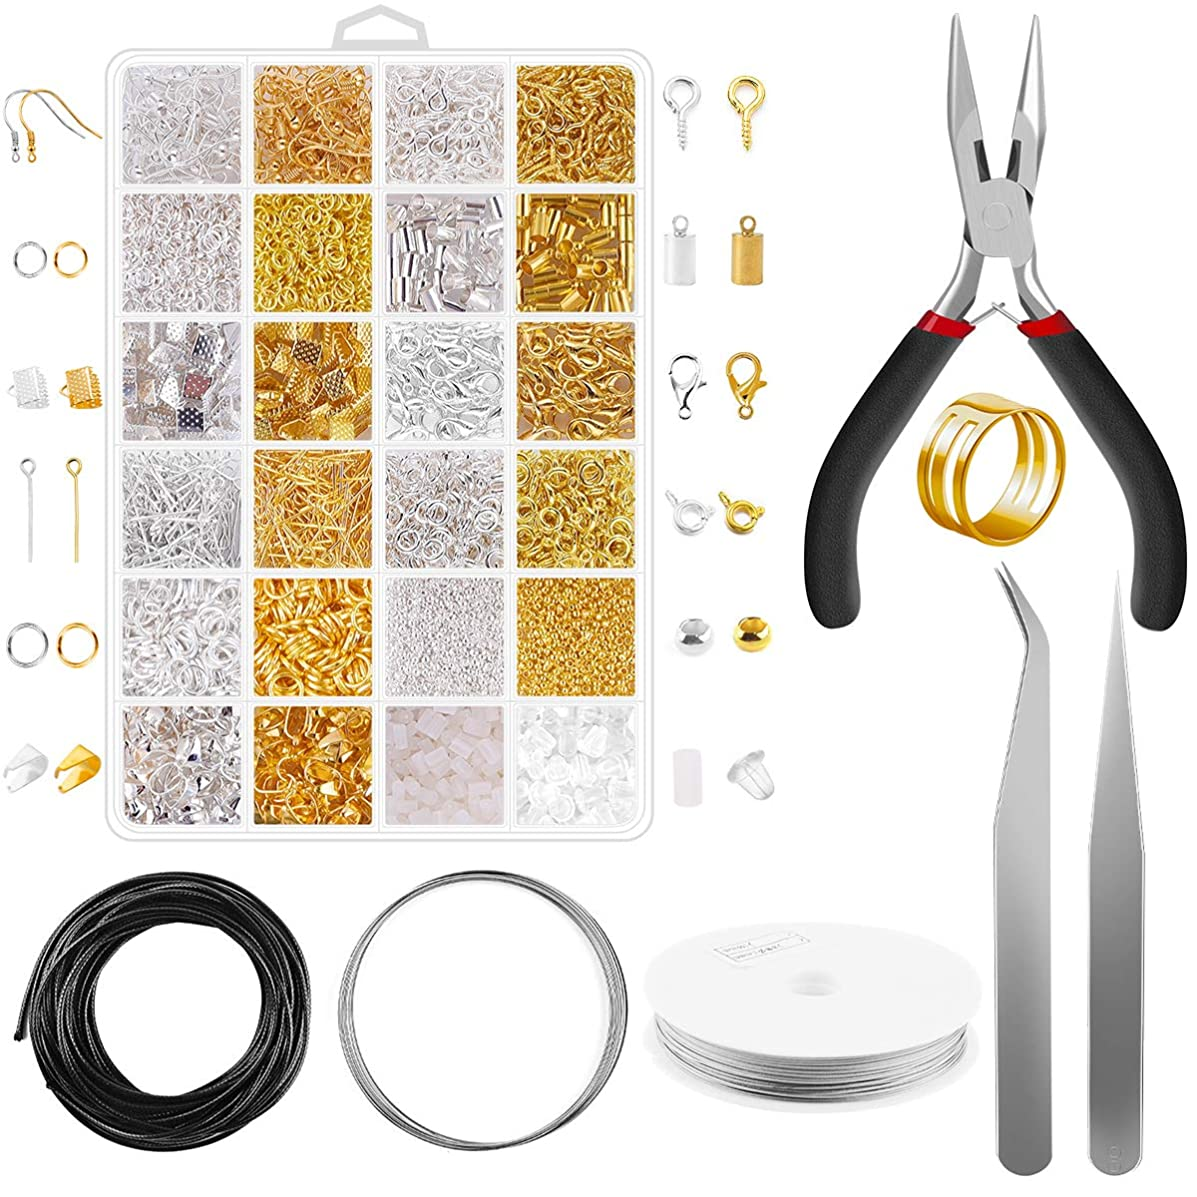 Jewelry Making Supplies - 2080Pcs Jewelry Findings Kit Supplies Rings Pins Bails Crimp Beads and Pliers Tools for Girl and Adults DIY Making